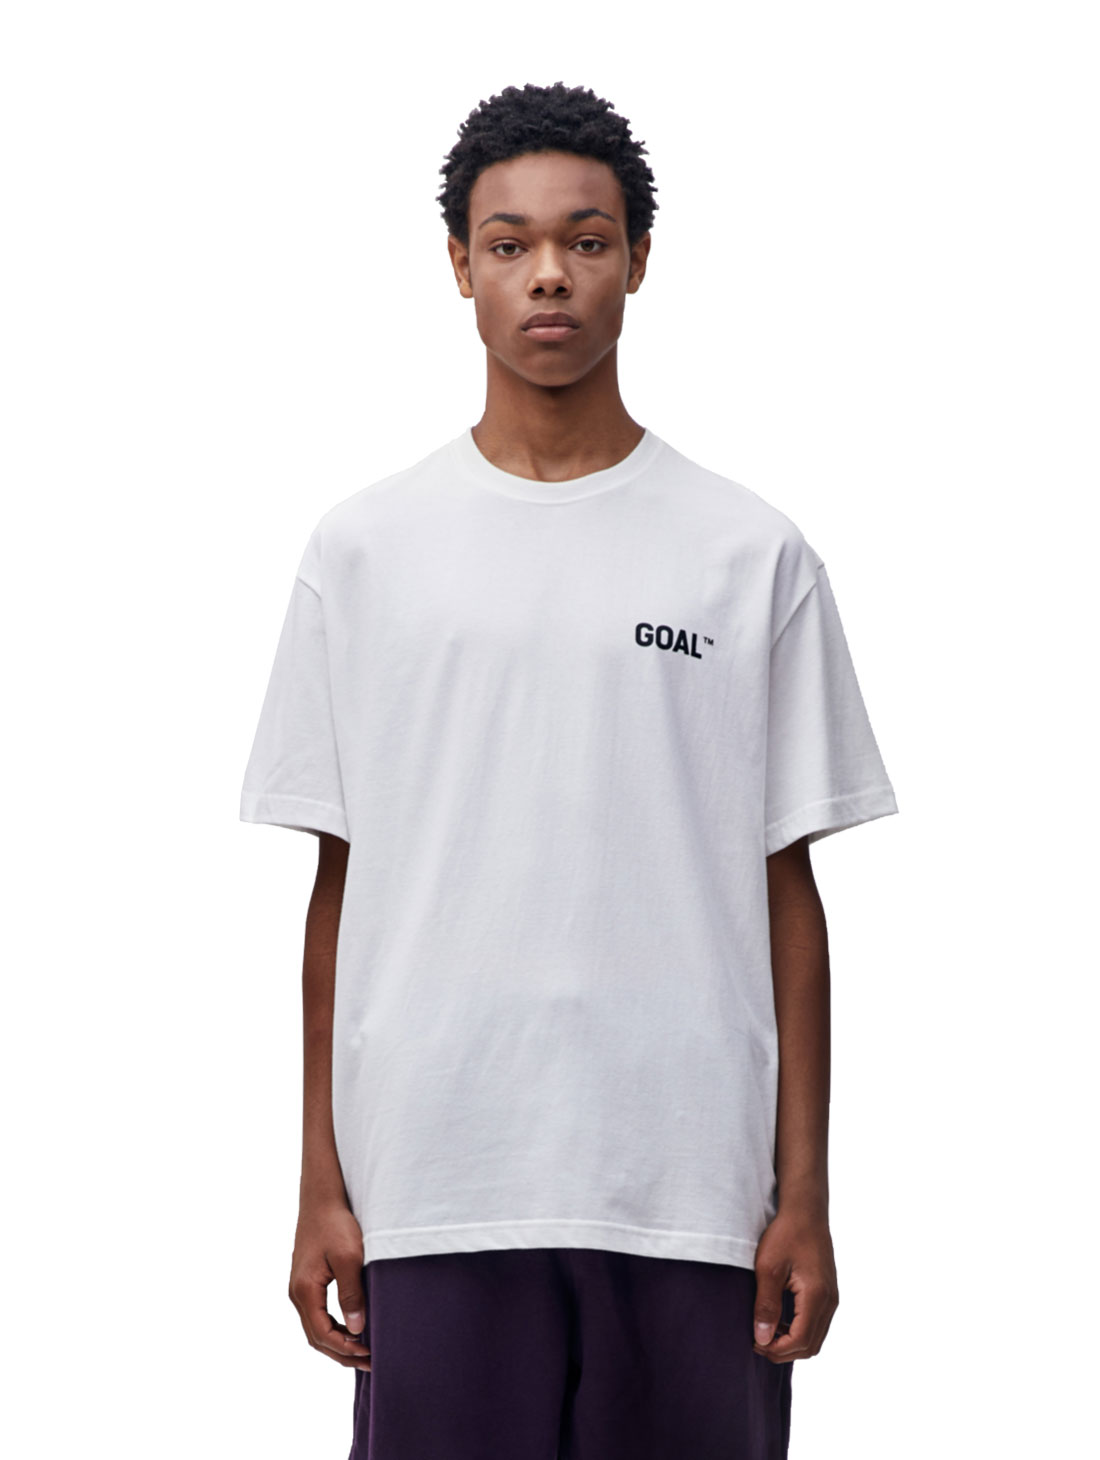 GOALSTUDIO TEXT LOGO TEE - WHITE